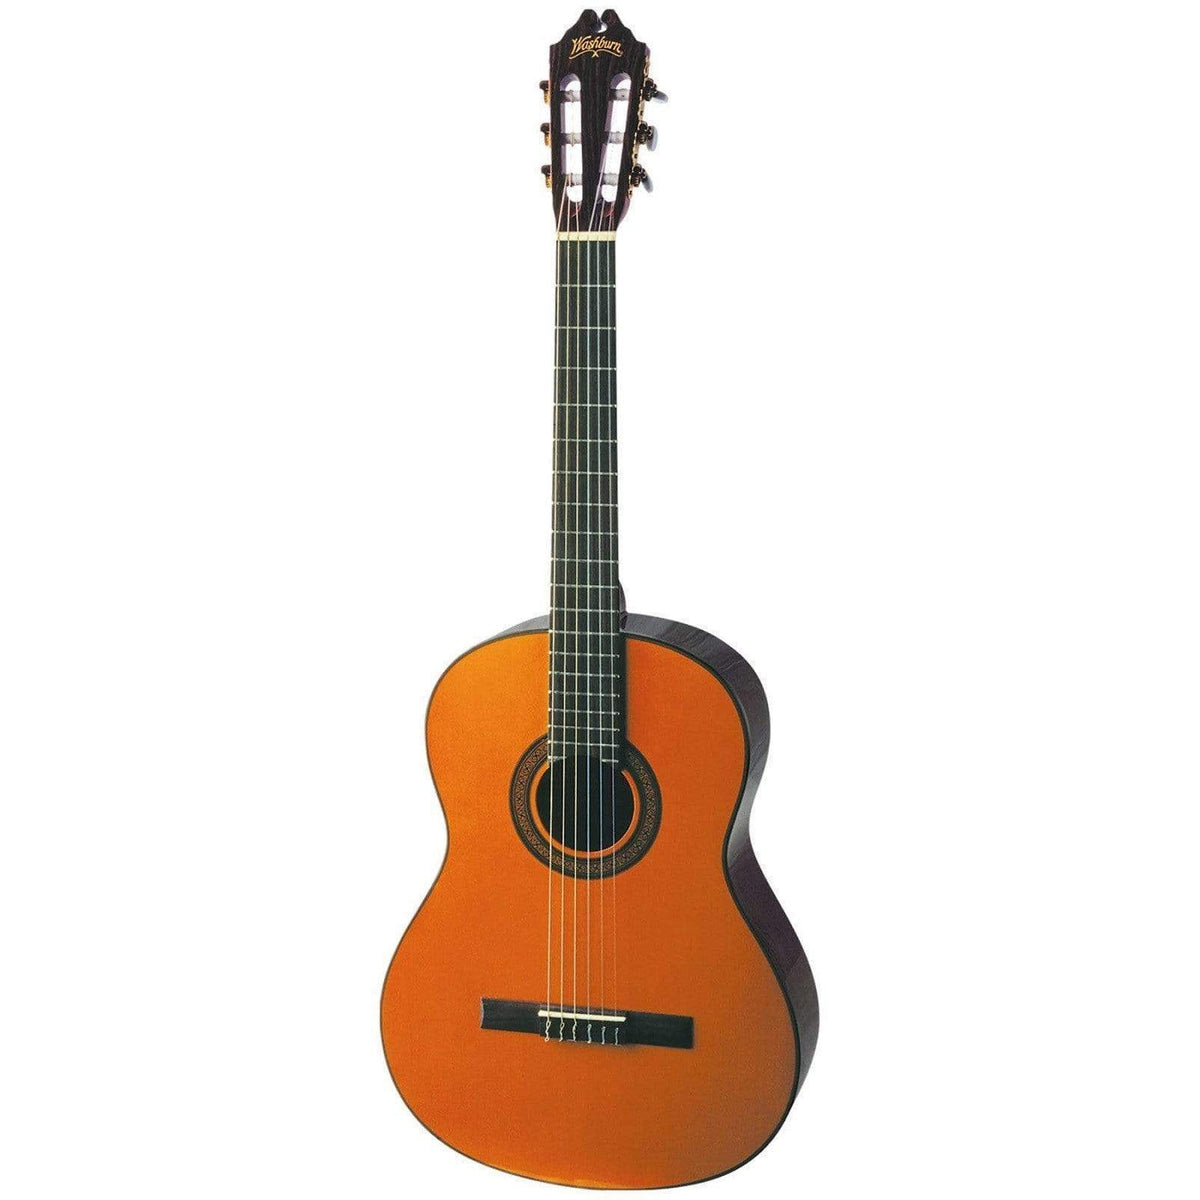 Washburn C40USM Classical Guitar - Natural